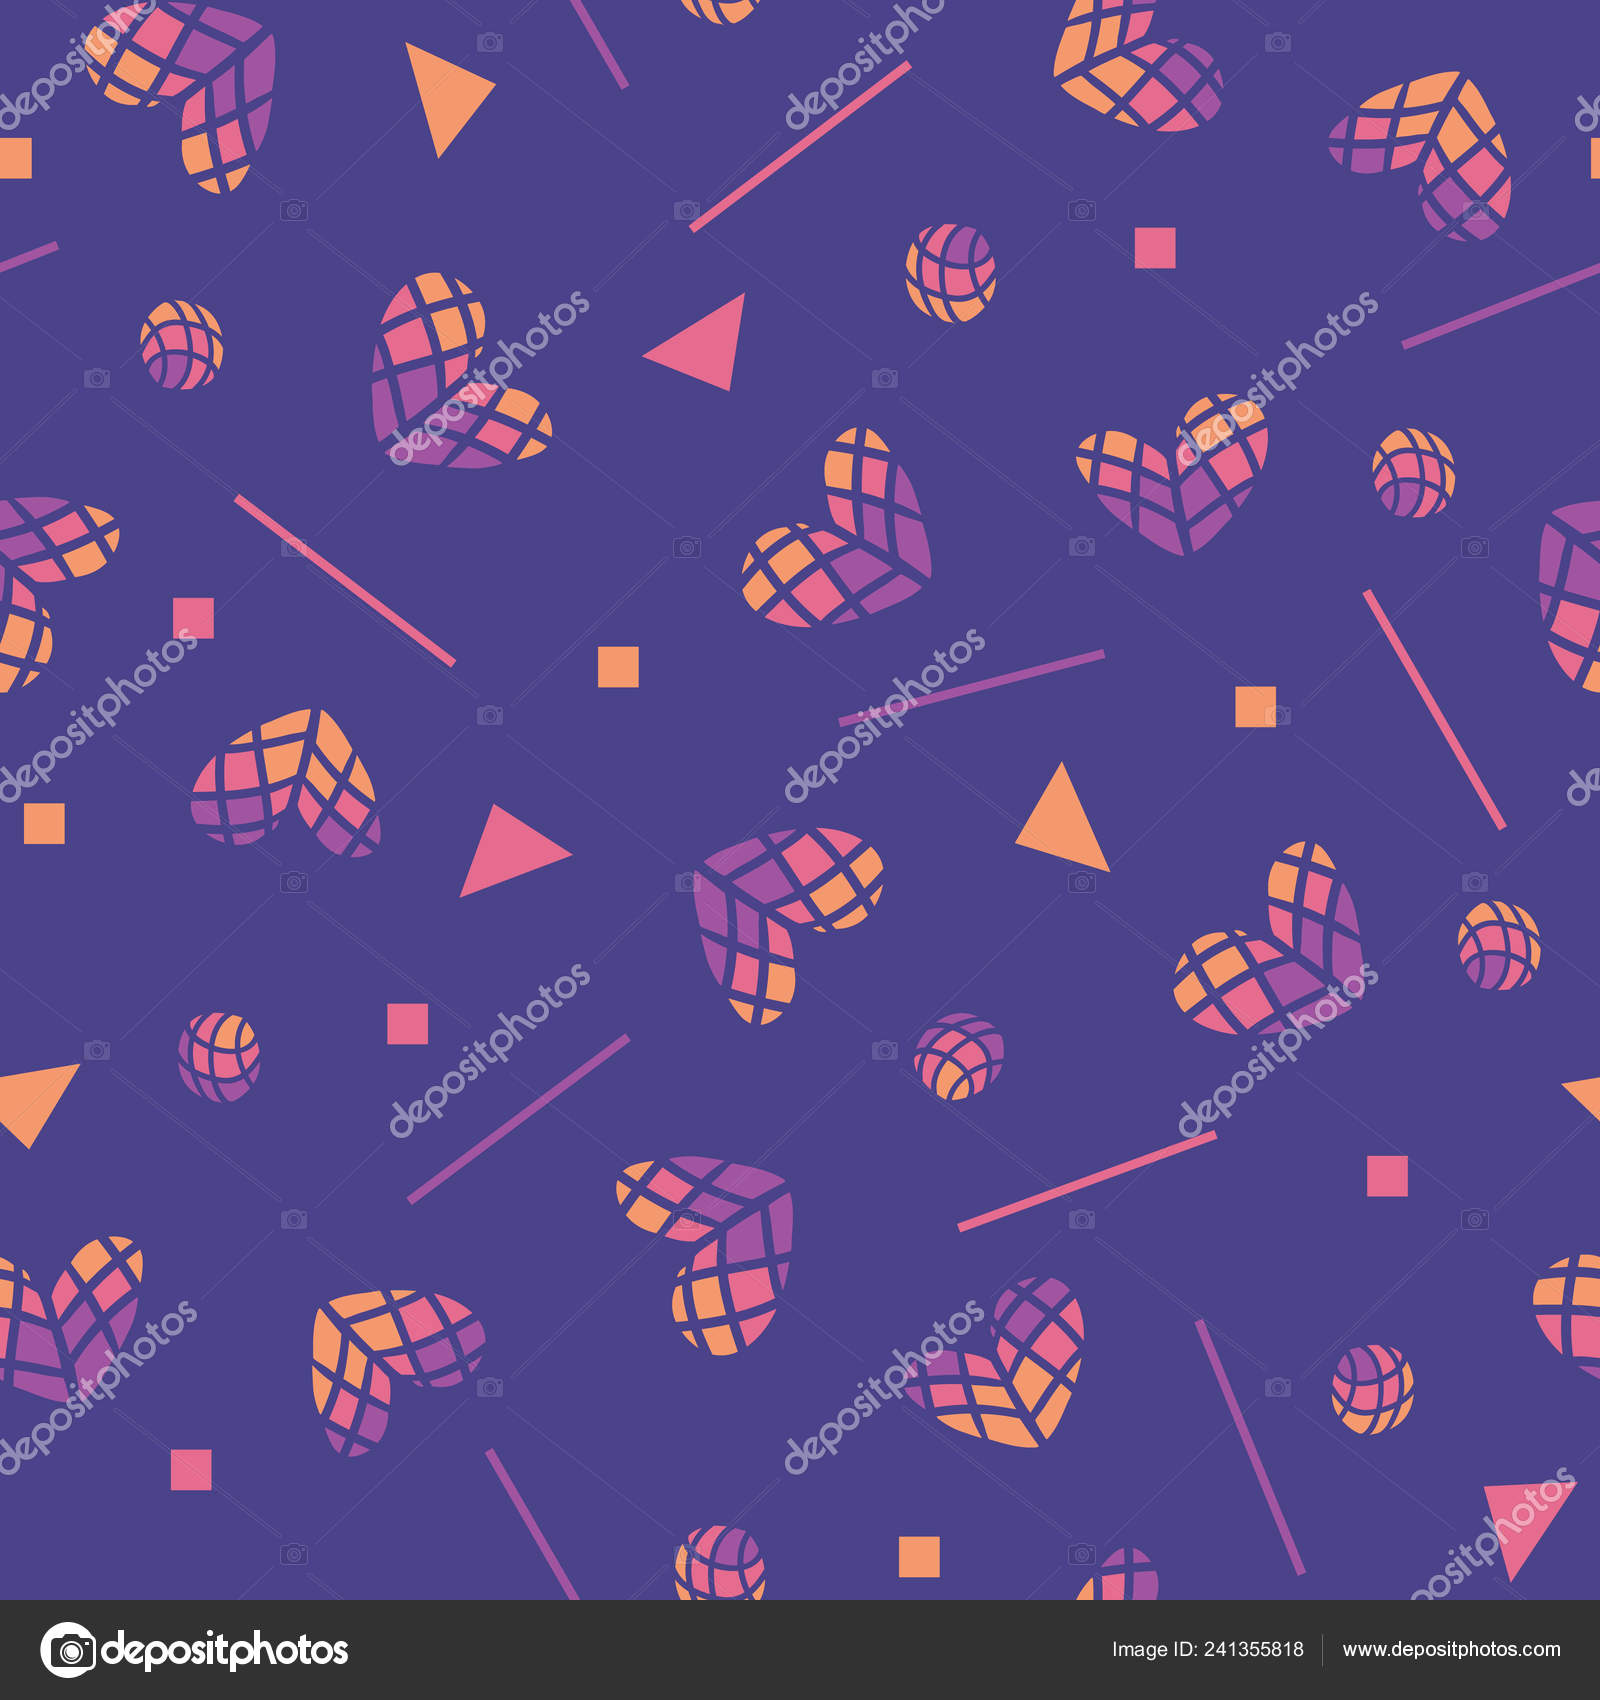 80s vector seamless pattern with hearts and geometric motifs